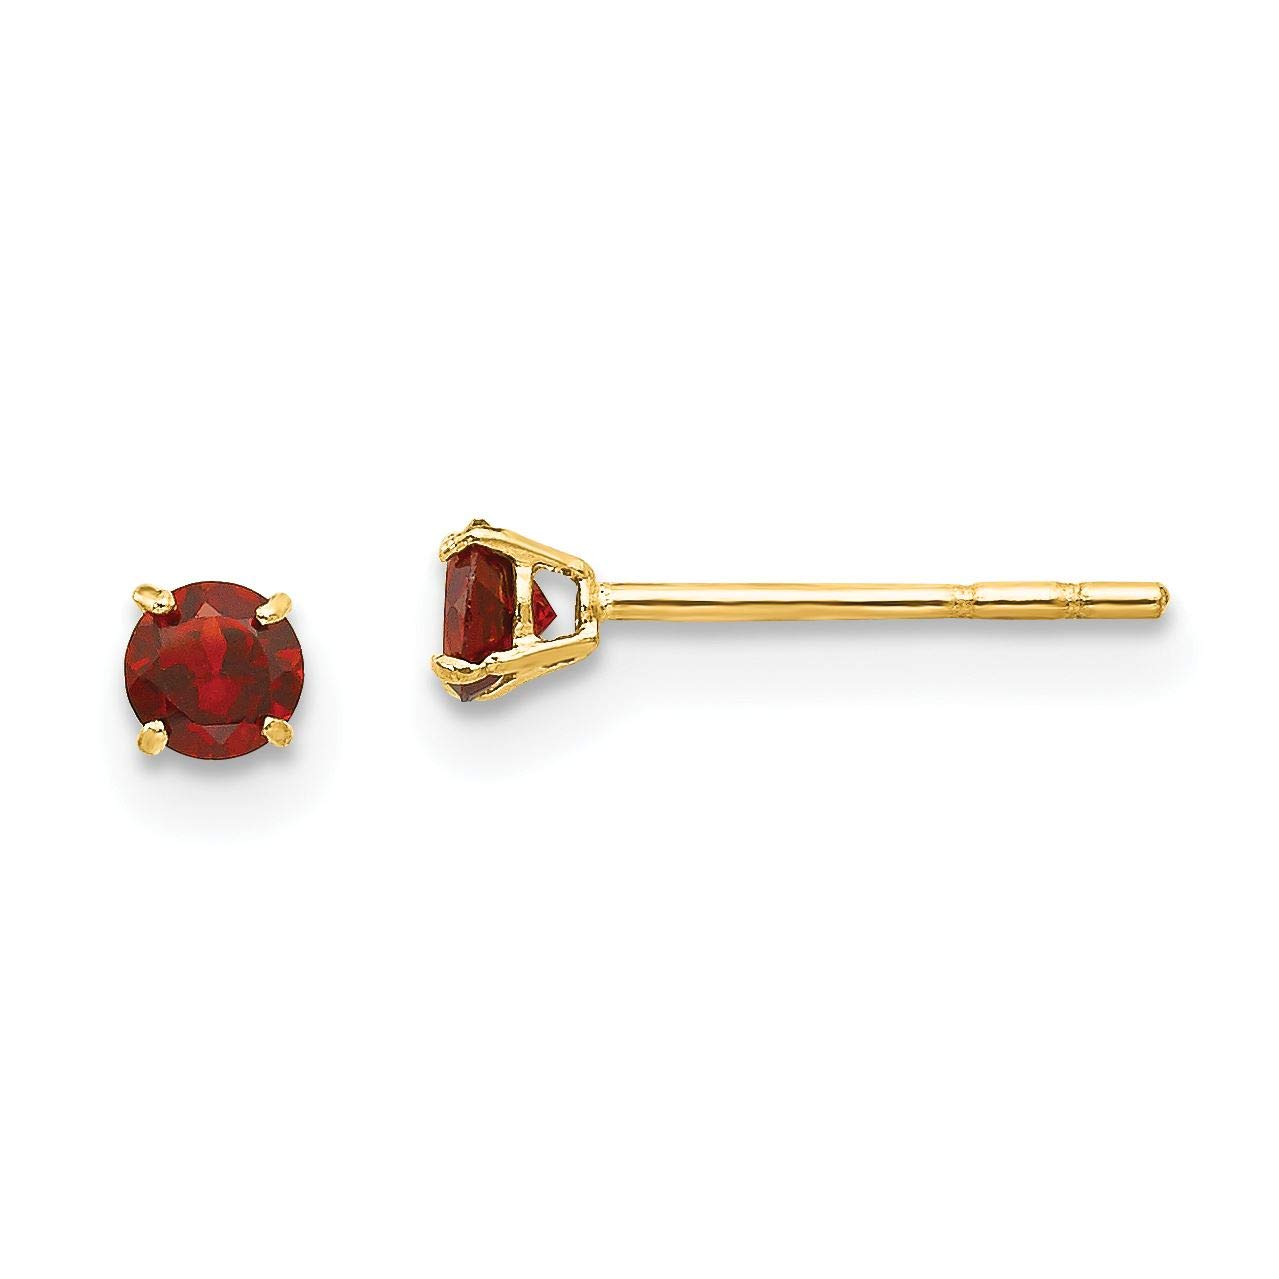 14K Yellow Gold Madi K Childrens 3 MM Round Garnet Post Stud Earrings